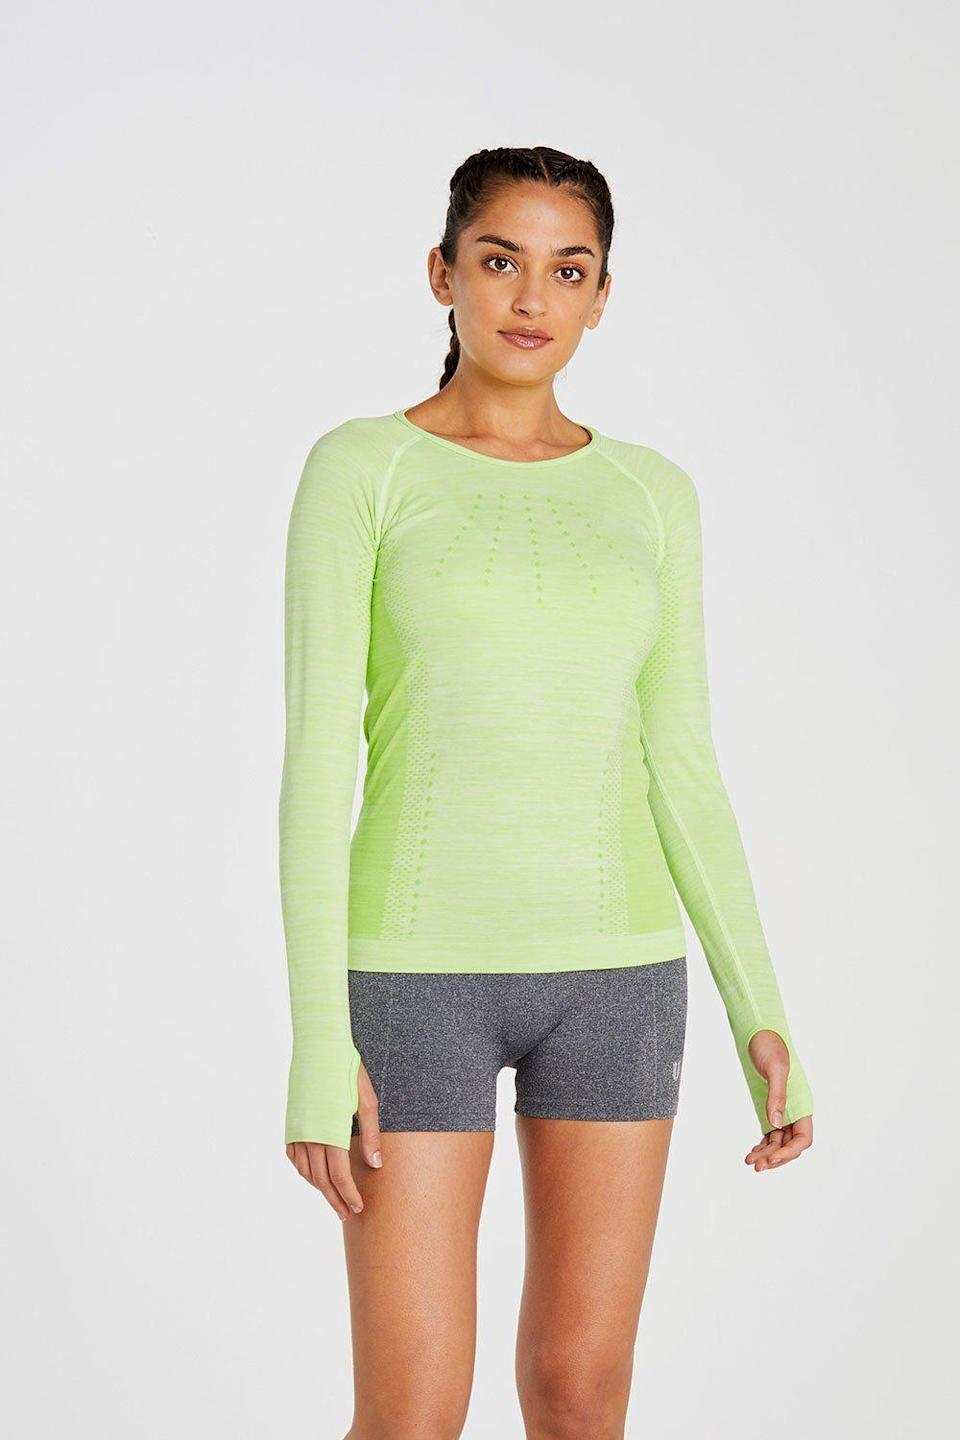 """<p><strong>Eleven by Venus Williams</strong></p><p>elevenbyvenuswilliams.com</p><p><strong>$27.97</strong></p><p><a href=""""https://elevenbyvenuswilliams.com/collections/tennis/products/absolute-long-sleeve-in-sharp-green"""" rel=""""nofollow noopener"""" target=""""_blank"""" data-ylk=""""slk:Shop Now"""" class=""""link rapid-noclick-resp"""">Shop Now</a></p><p>Founded by multi-time Grand Slam singles champion Venus Williams, Eleven fitness pieces are built to optimize performance in comfortable, multifunctional fabrics. Loomed in four-way stretch fabric with liquid-ousting technology, this featherlight lime green top suits heavy cardio activities and social-distancing walks alike. </p>"""